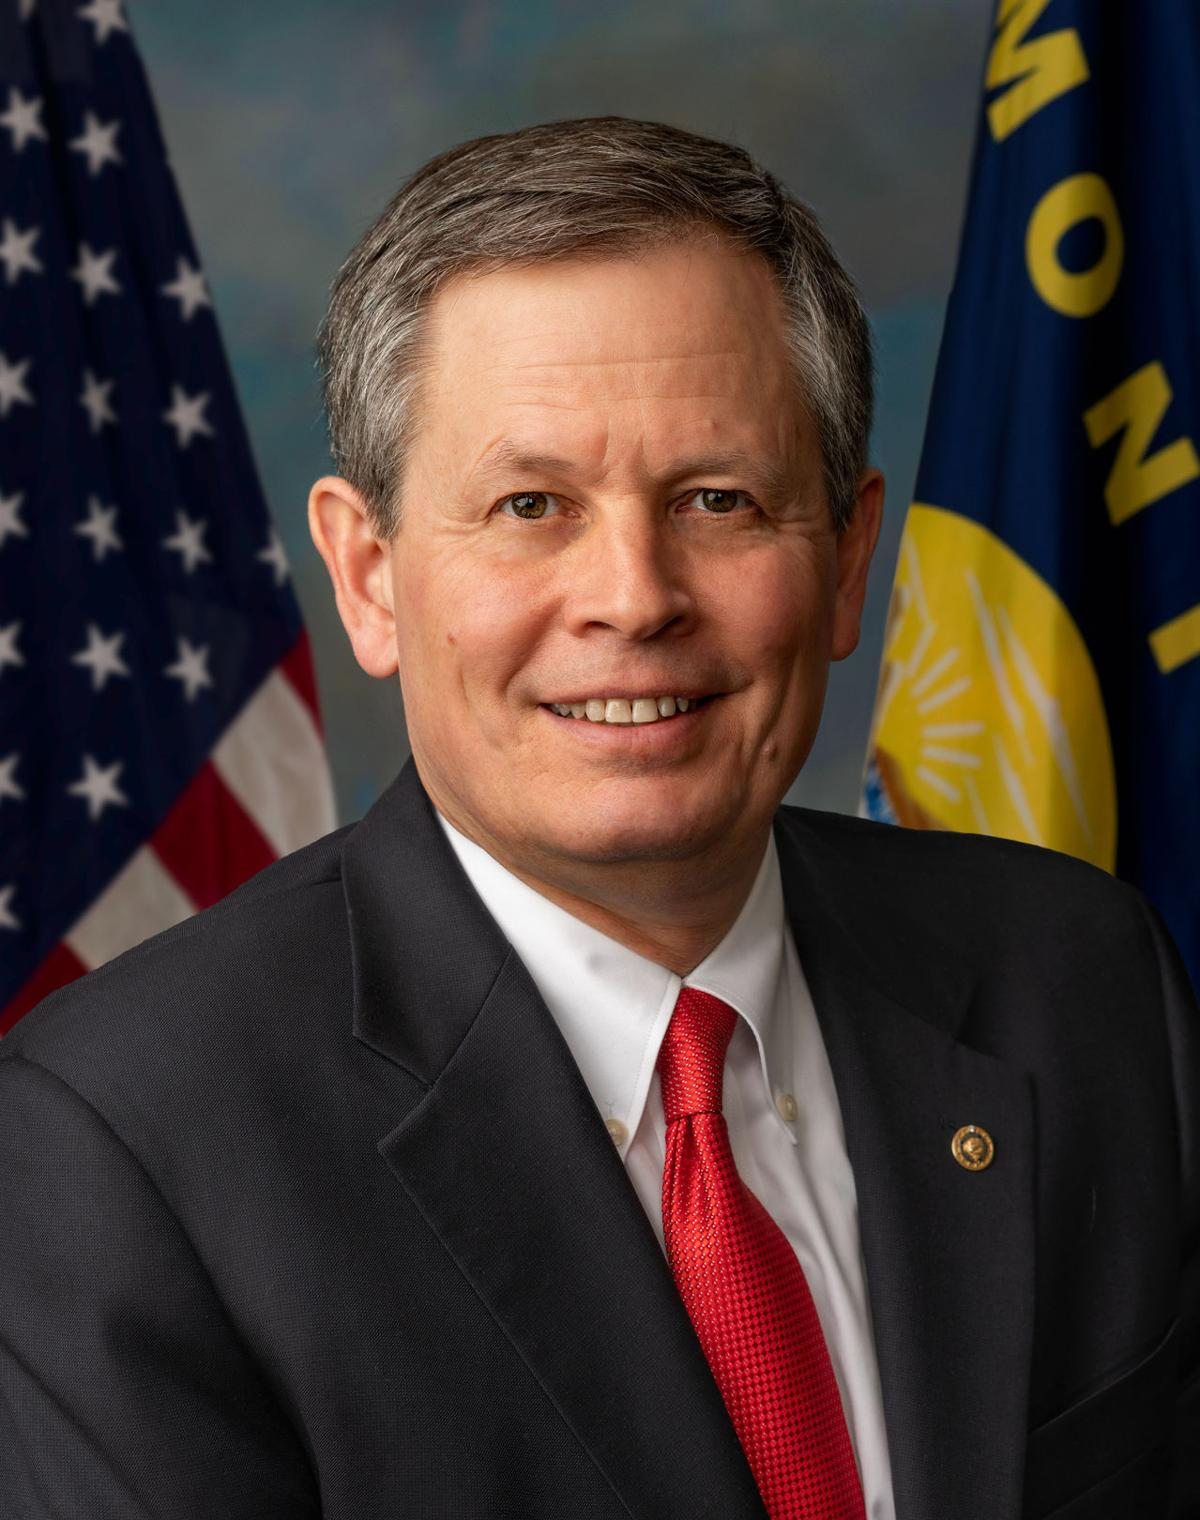 Senator Steve Daines introduces new Bill to protect Montanans Second Amendment Rights